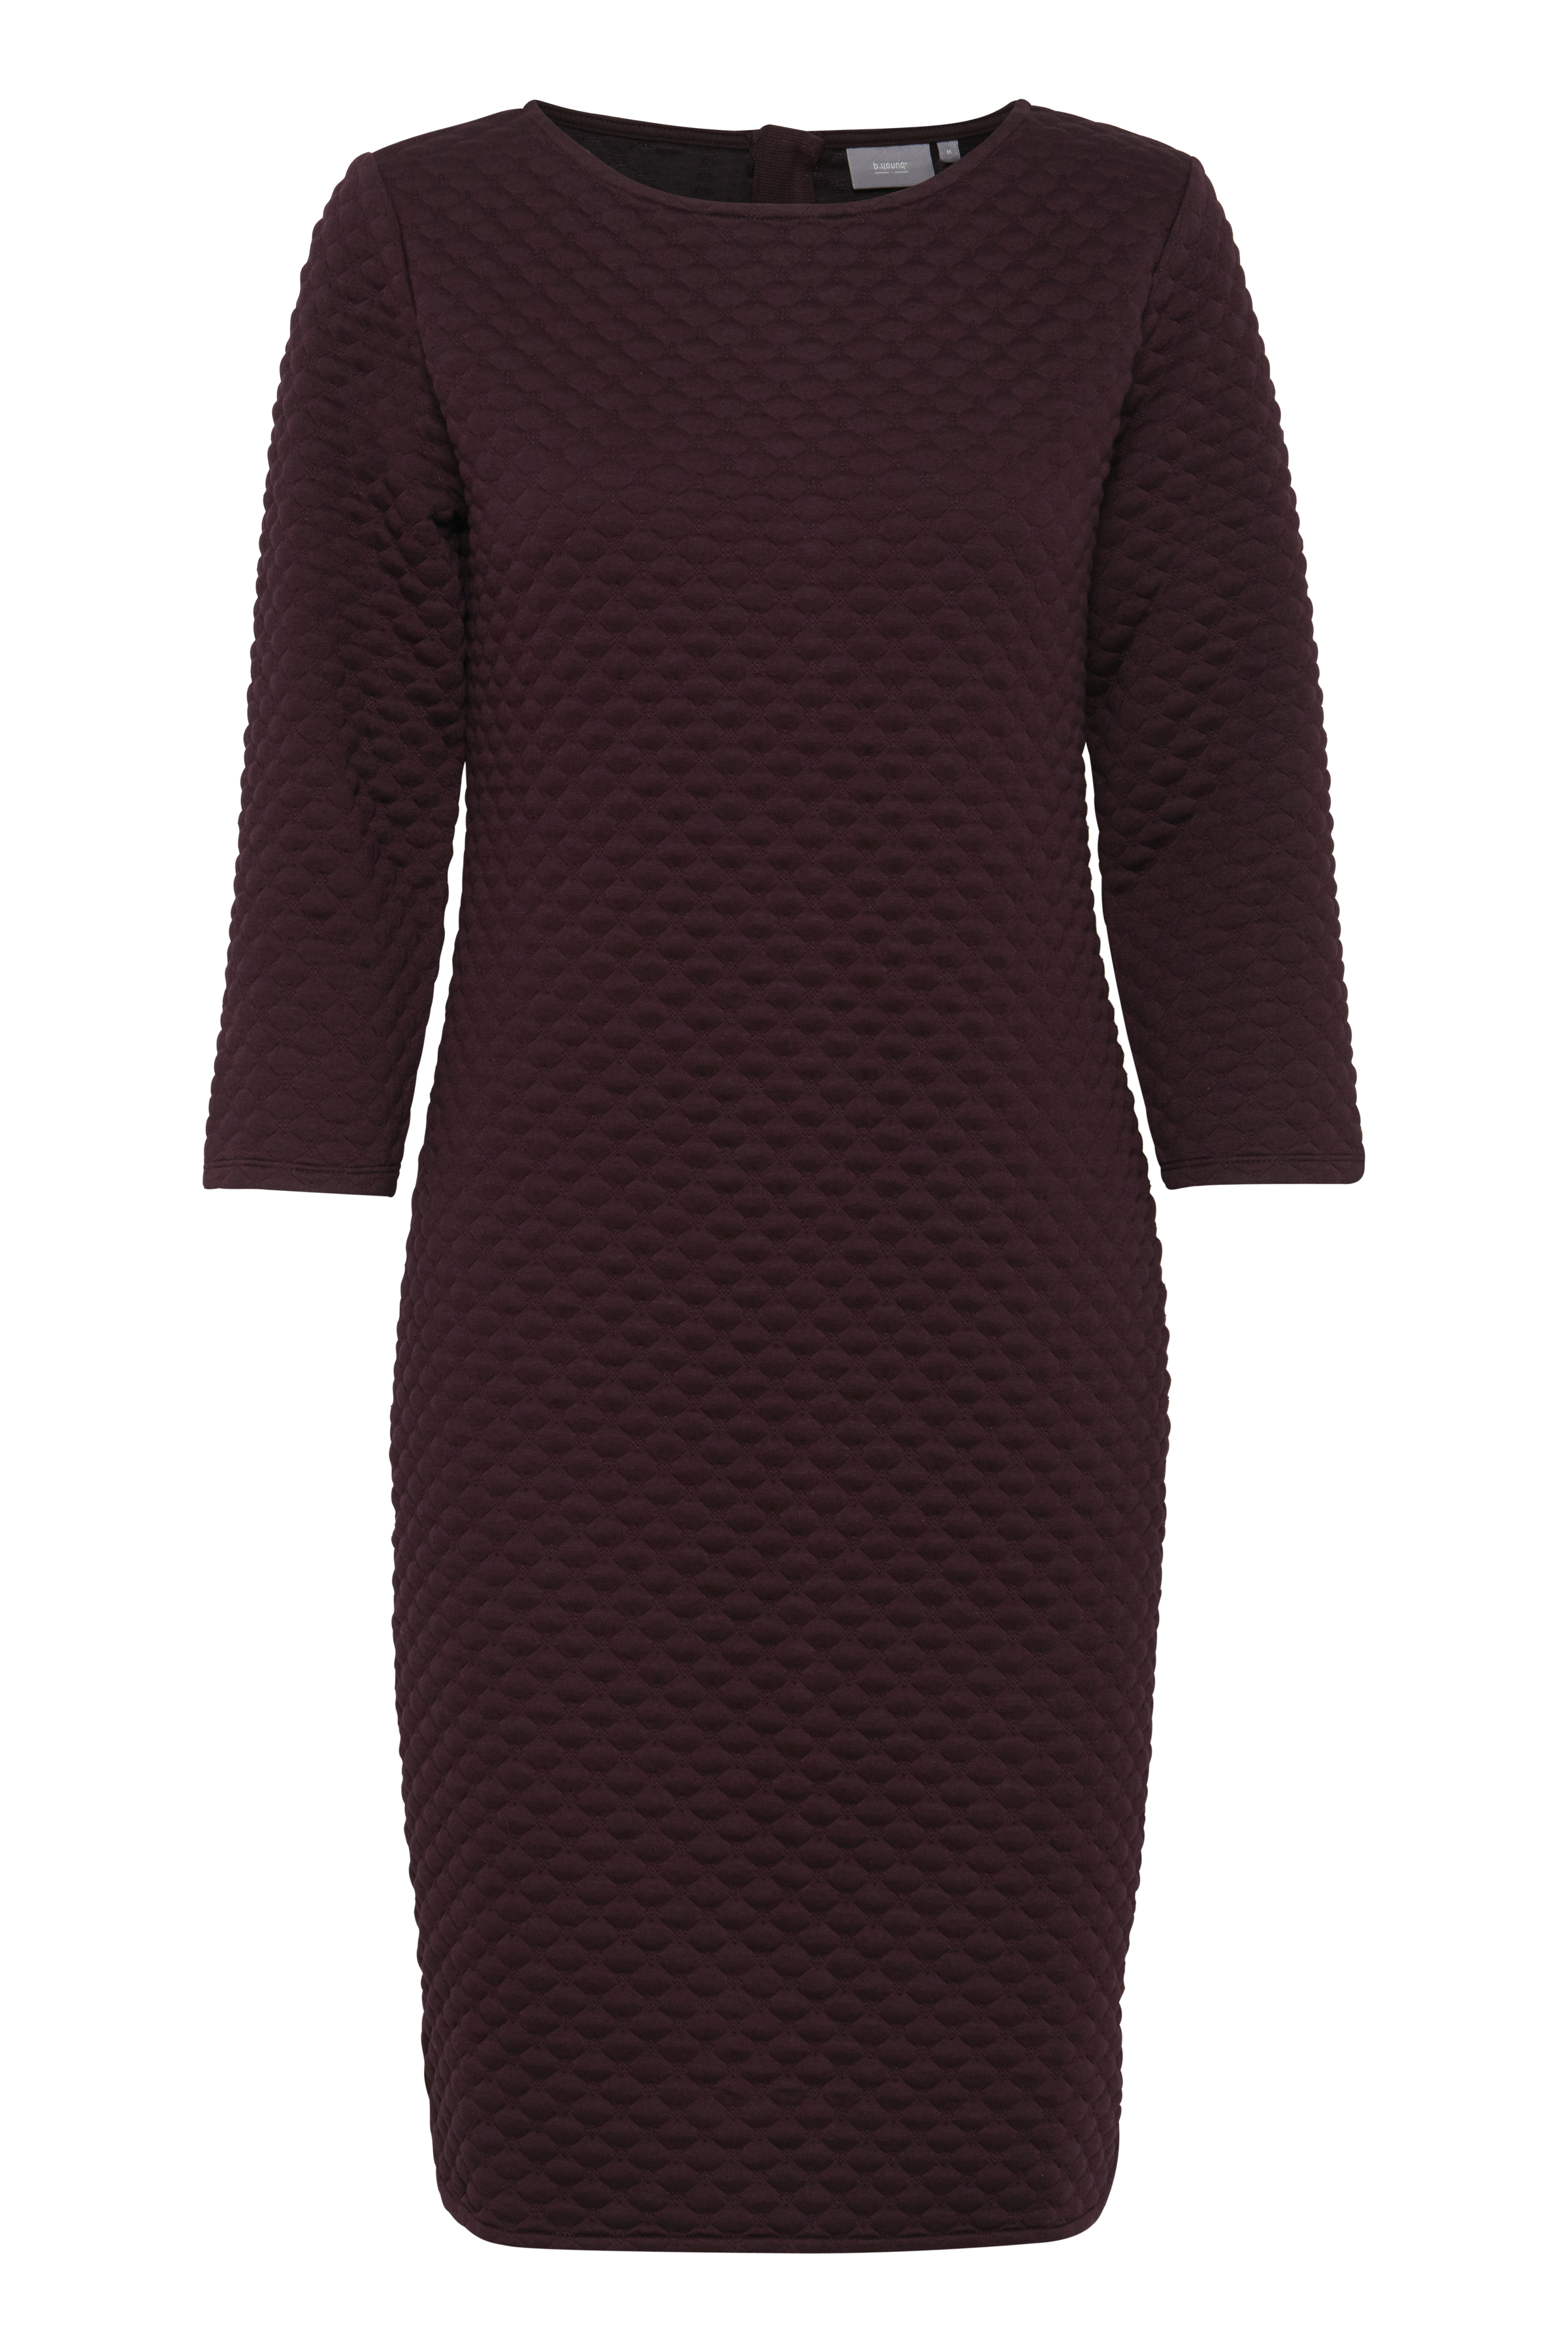 Beetroot Jersey dress from b.young – Buy Beetroot Jersey dress from size XS-XXL here